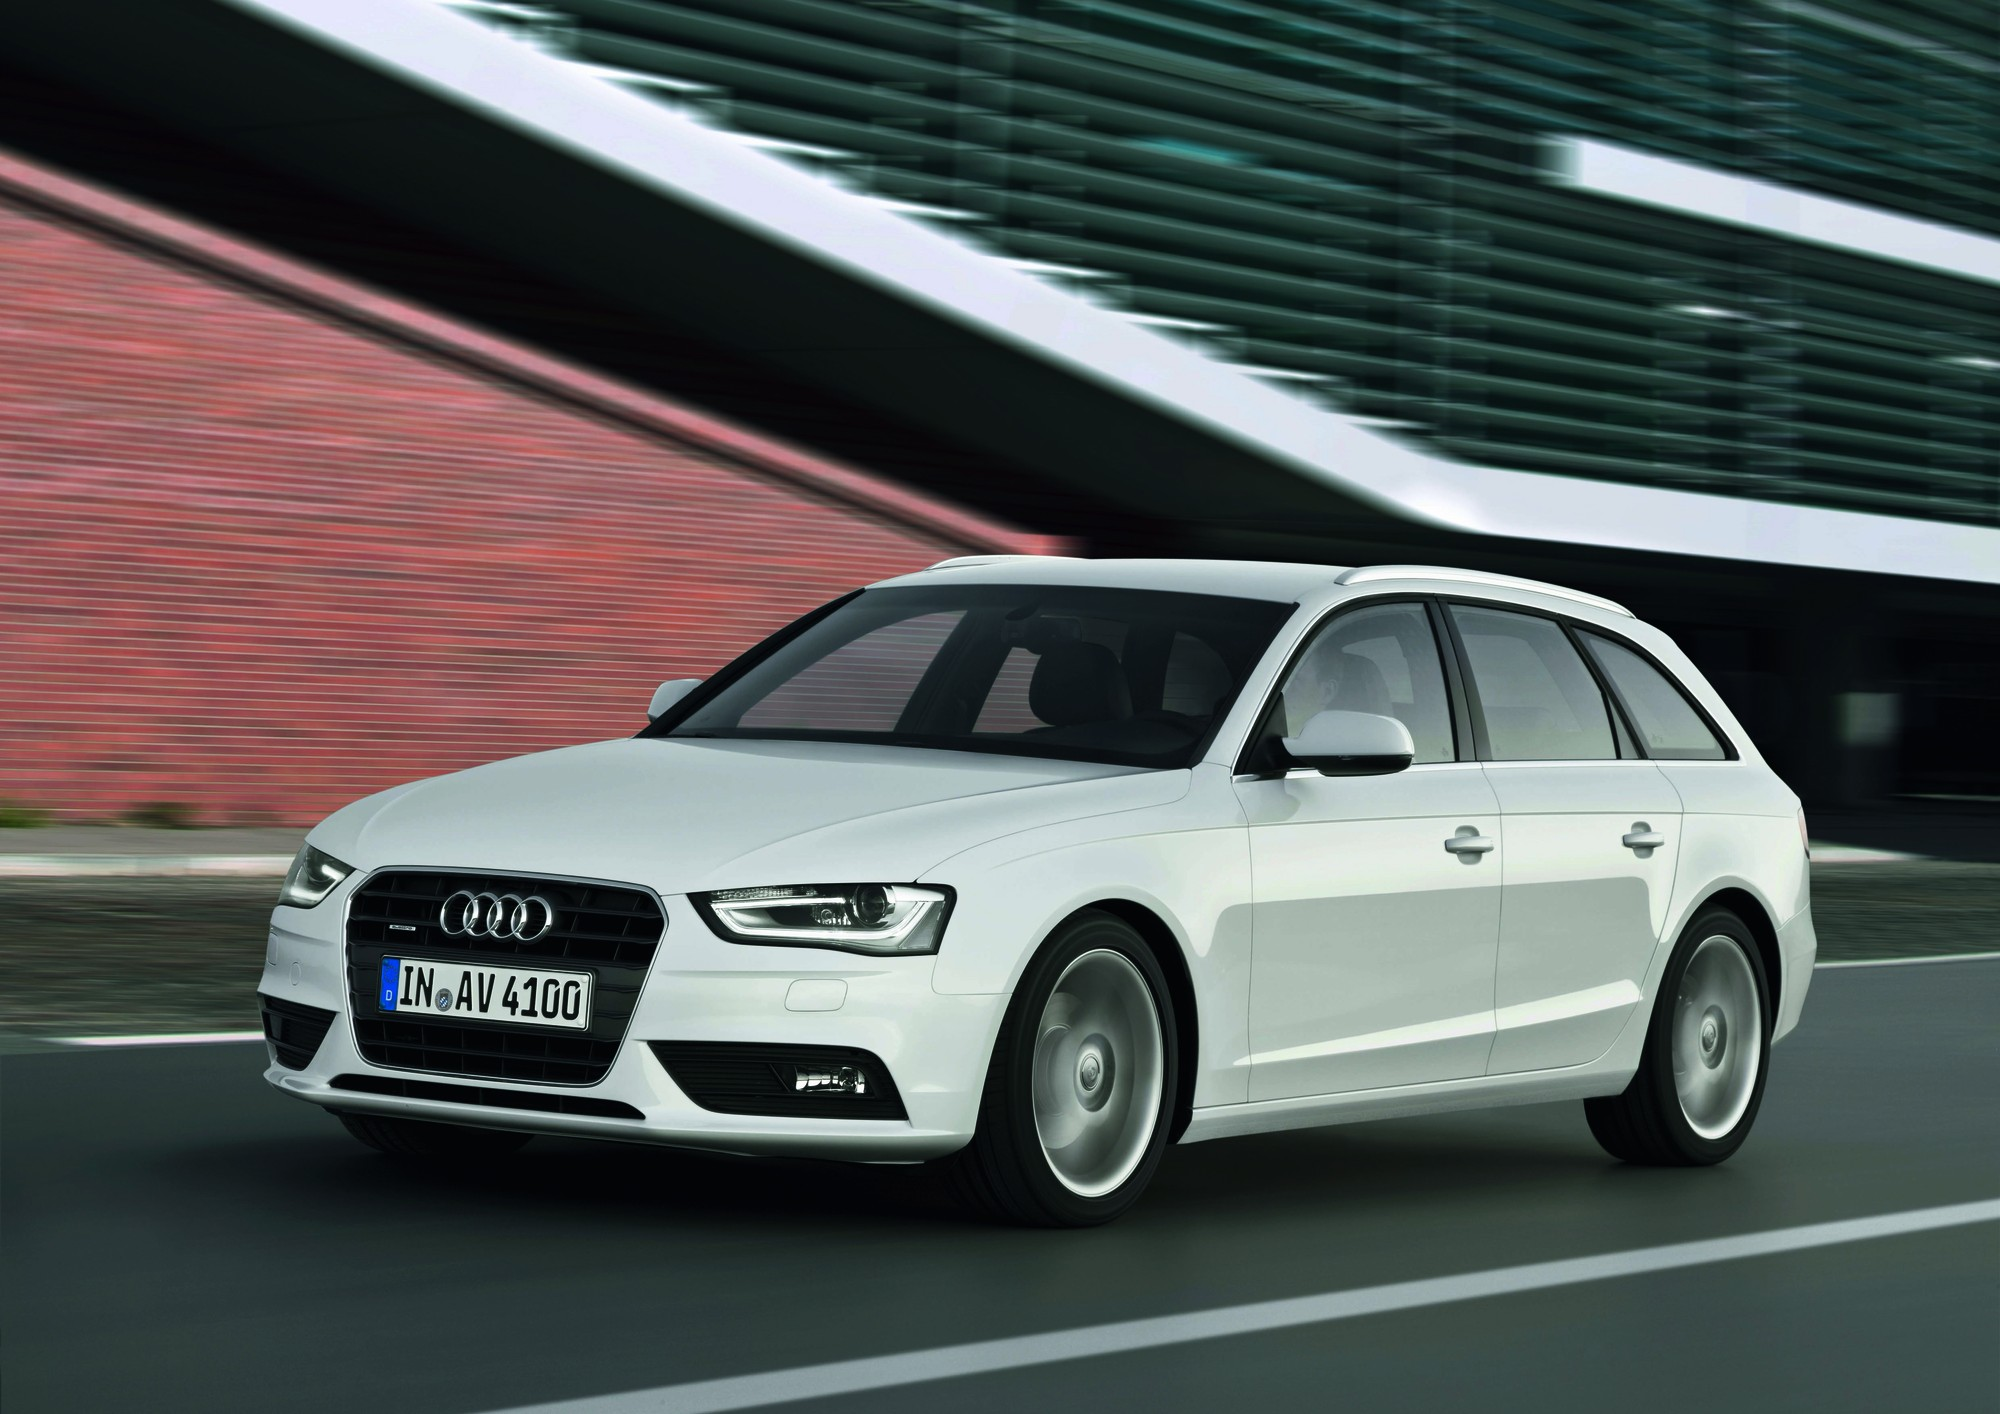 audi a4 avant 2 0 tfsi attraction quattro s tronic slideshow. Black Bedroom Furniture Sets. Home Design Ideas